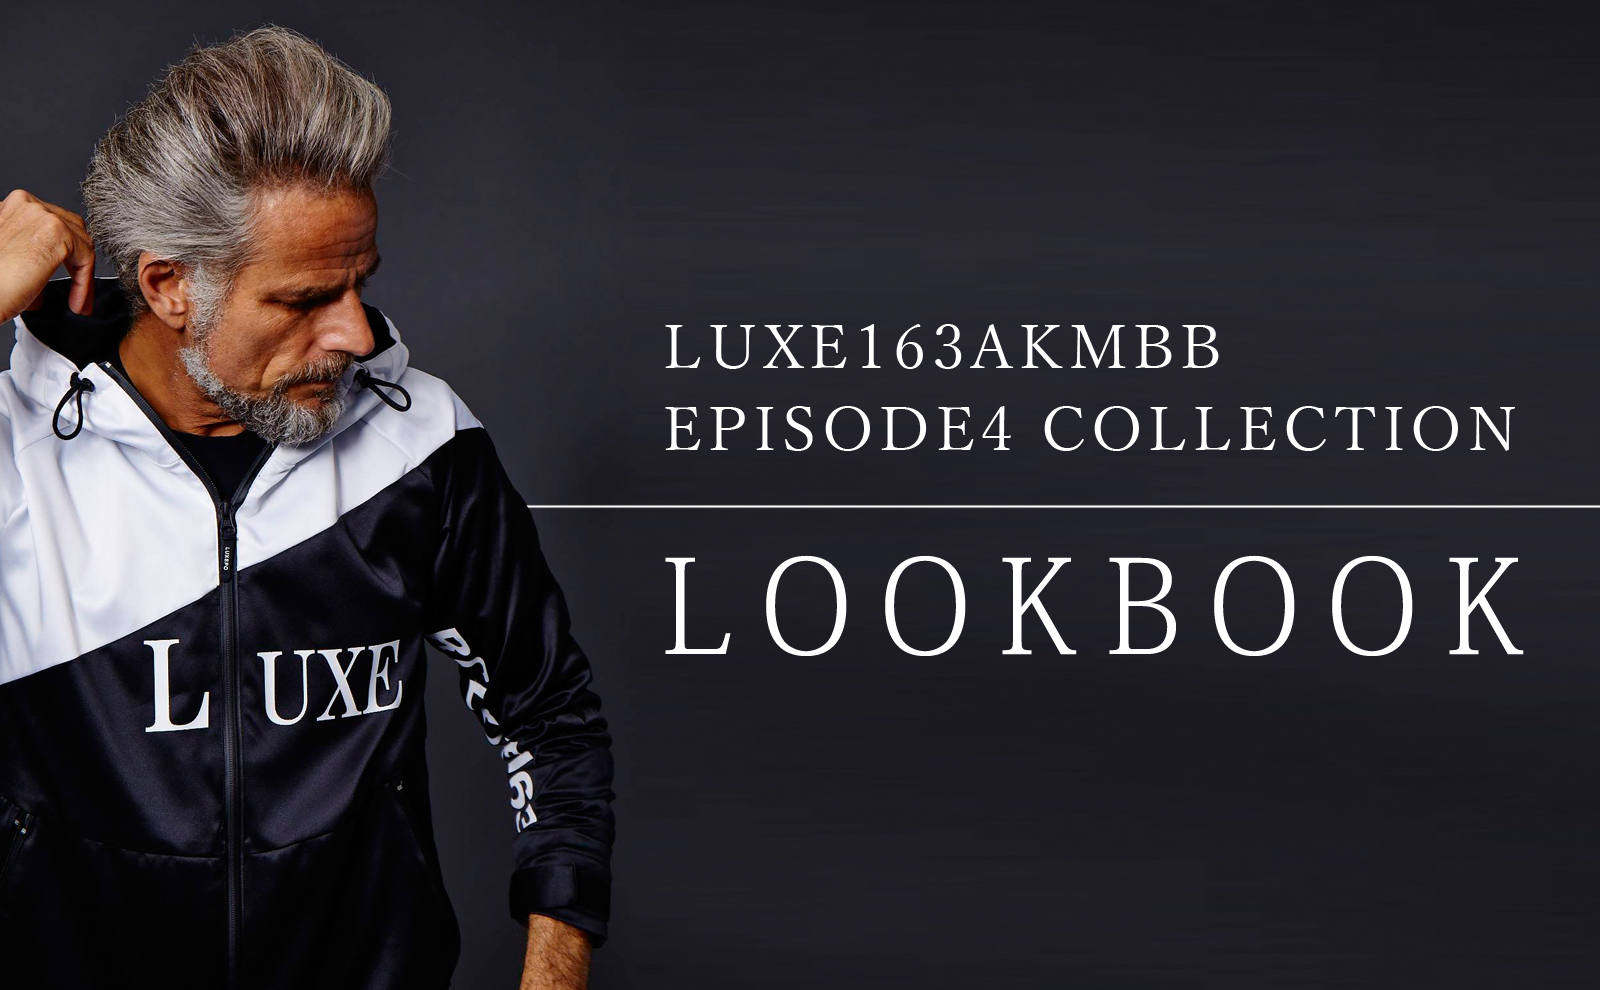 LUXE163AKMBB EPISODE 4 COLLECTION LOOKBOOK